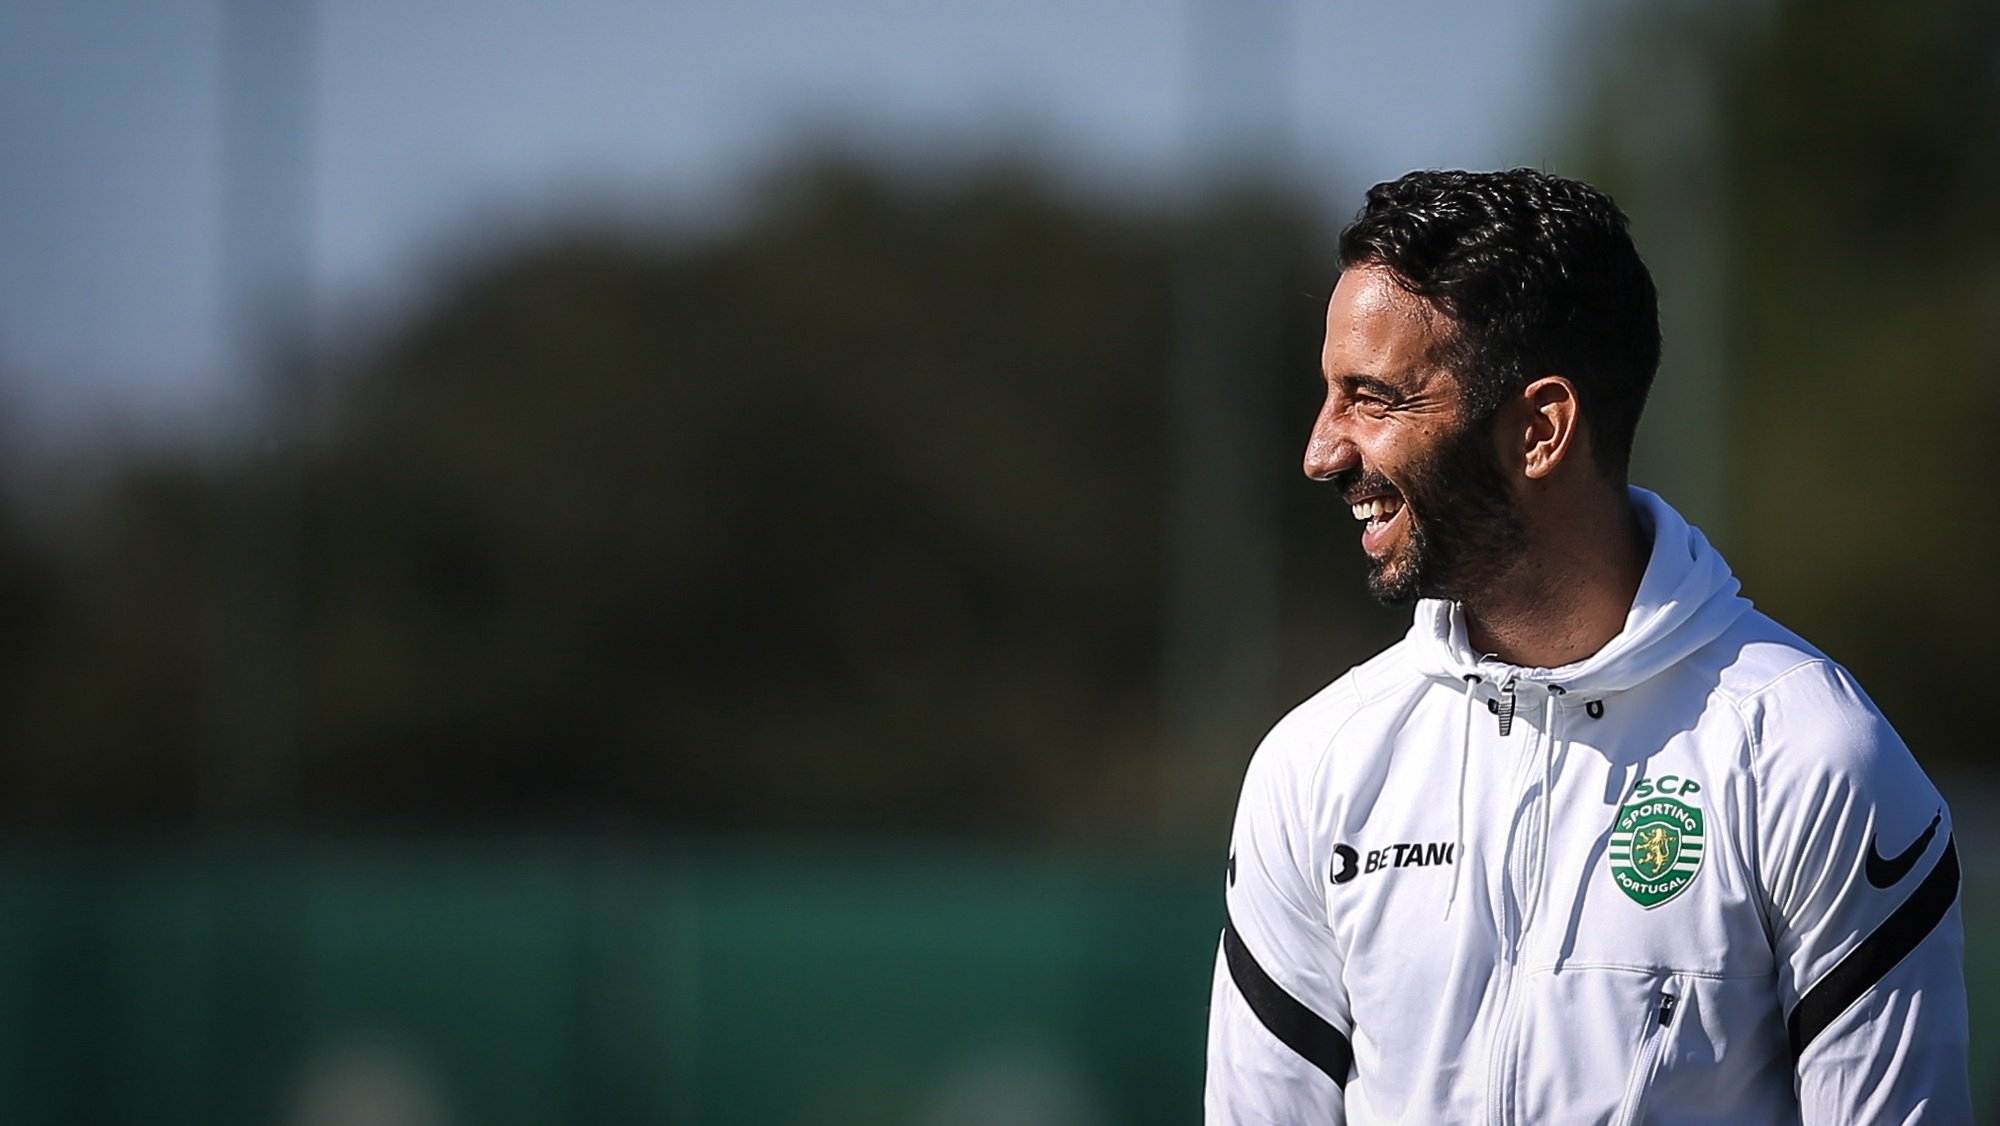 epa09491228 Sporting head coach Ruben Amorim reacts during a training session in Alcochete, Portugal, 27 September 2021. Sporting CP will face Borussia Dortmund in Germany on 28 September 2021 in their UEFA Champions League group stage soccer match.  EPA/RODRIGO ANTUNES